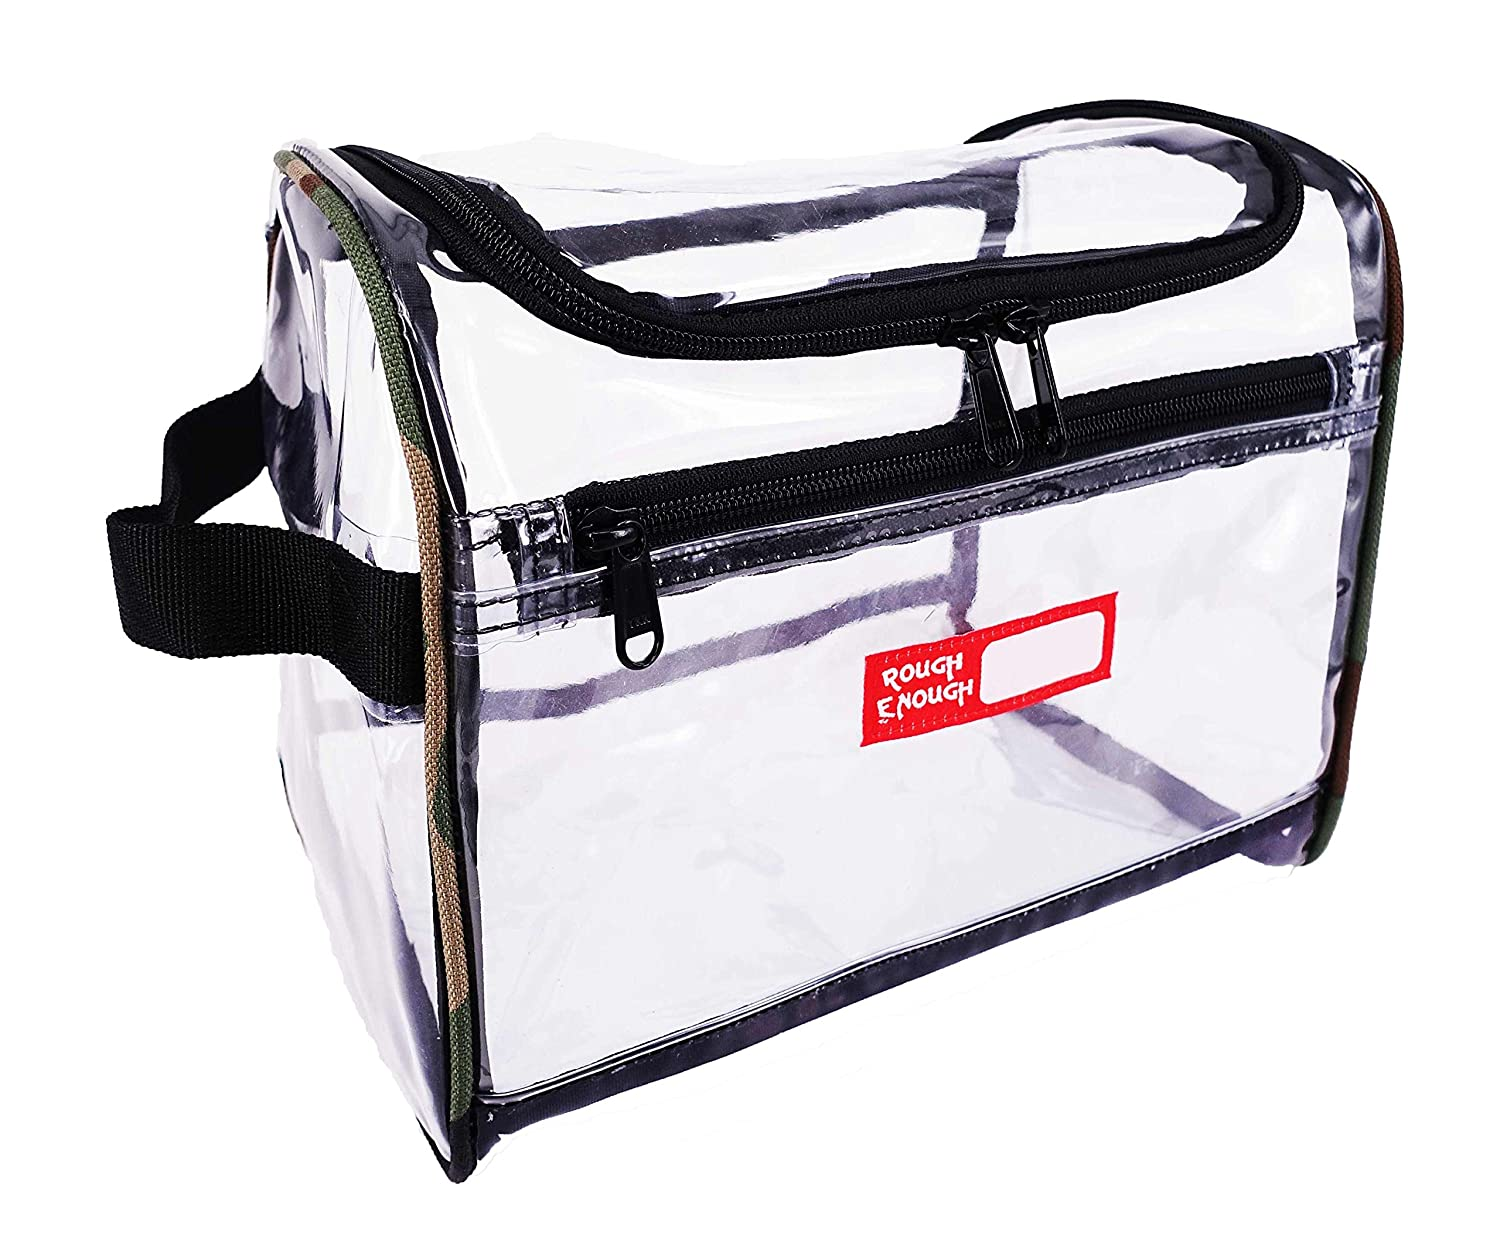 b3de618eefb2 Rough Enough Transparent Large Capacity Toiletry Bag Big Volume Zippered  Luggage Clear Travel Wash Bag Cosmetic Makeup Organizer Kit Box Set with ...